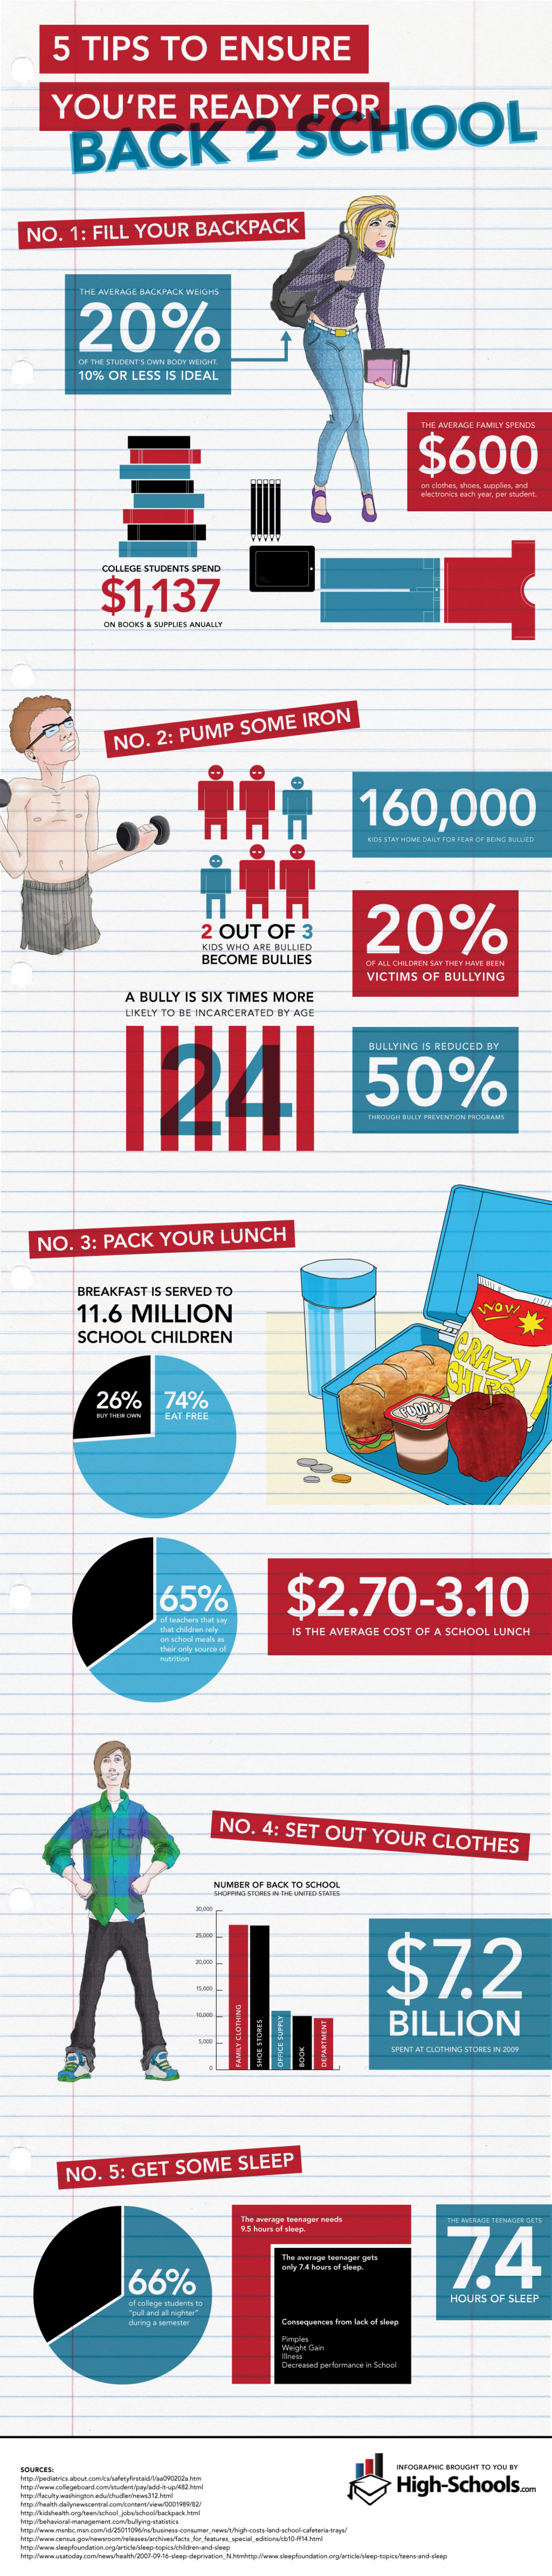 Tips To Ensure You're Ready For Back To School Infographic